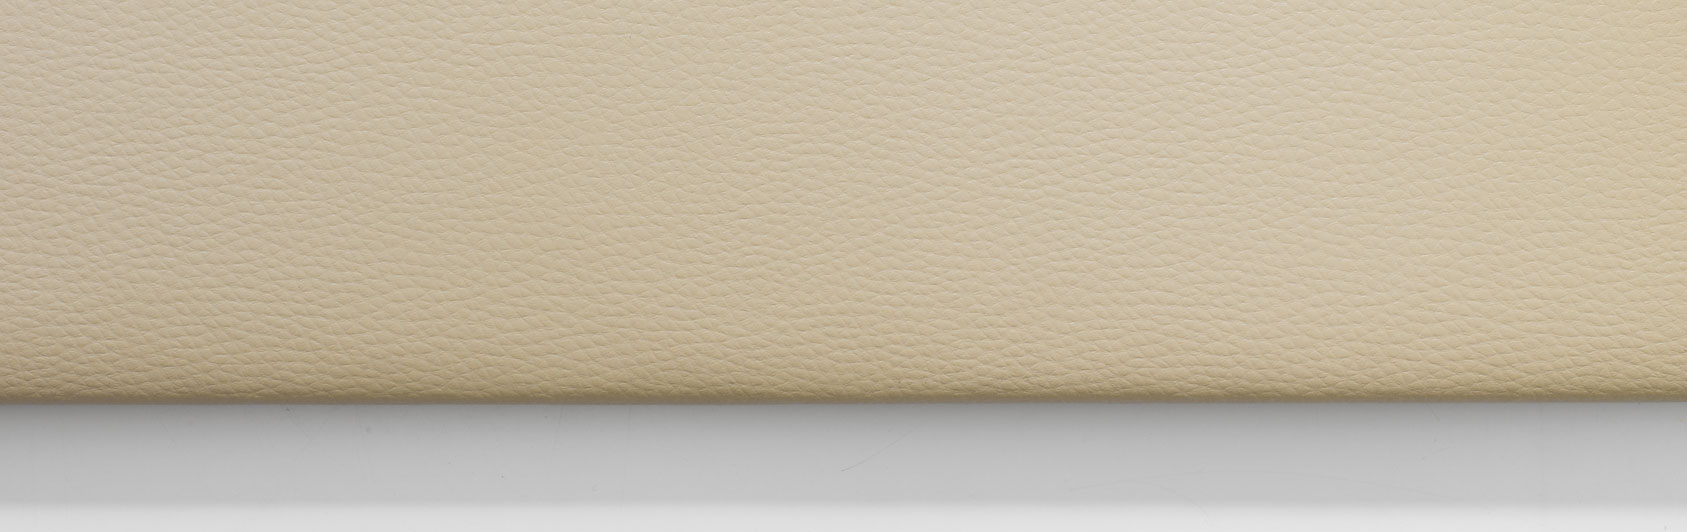 sample hassock faux leather color code 4960 color pebble